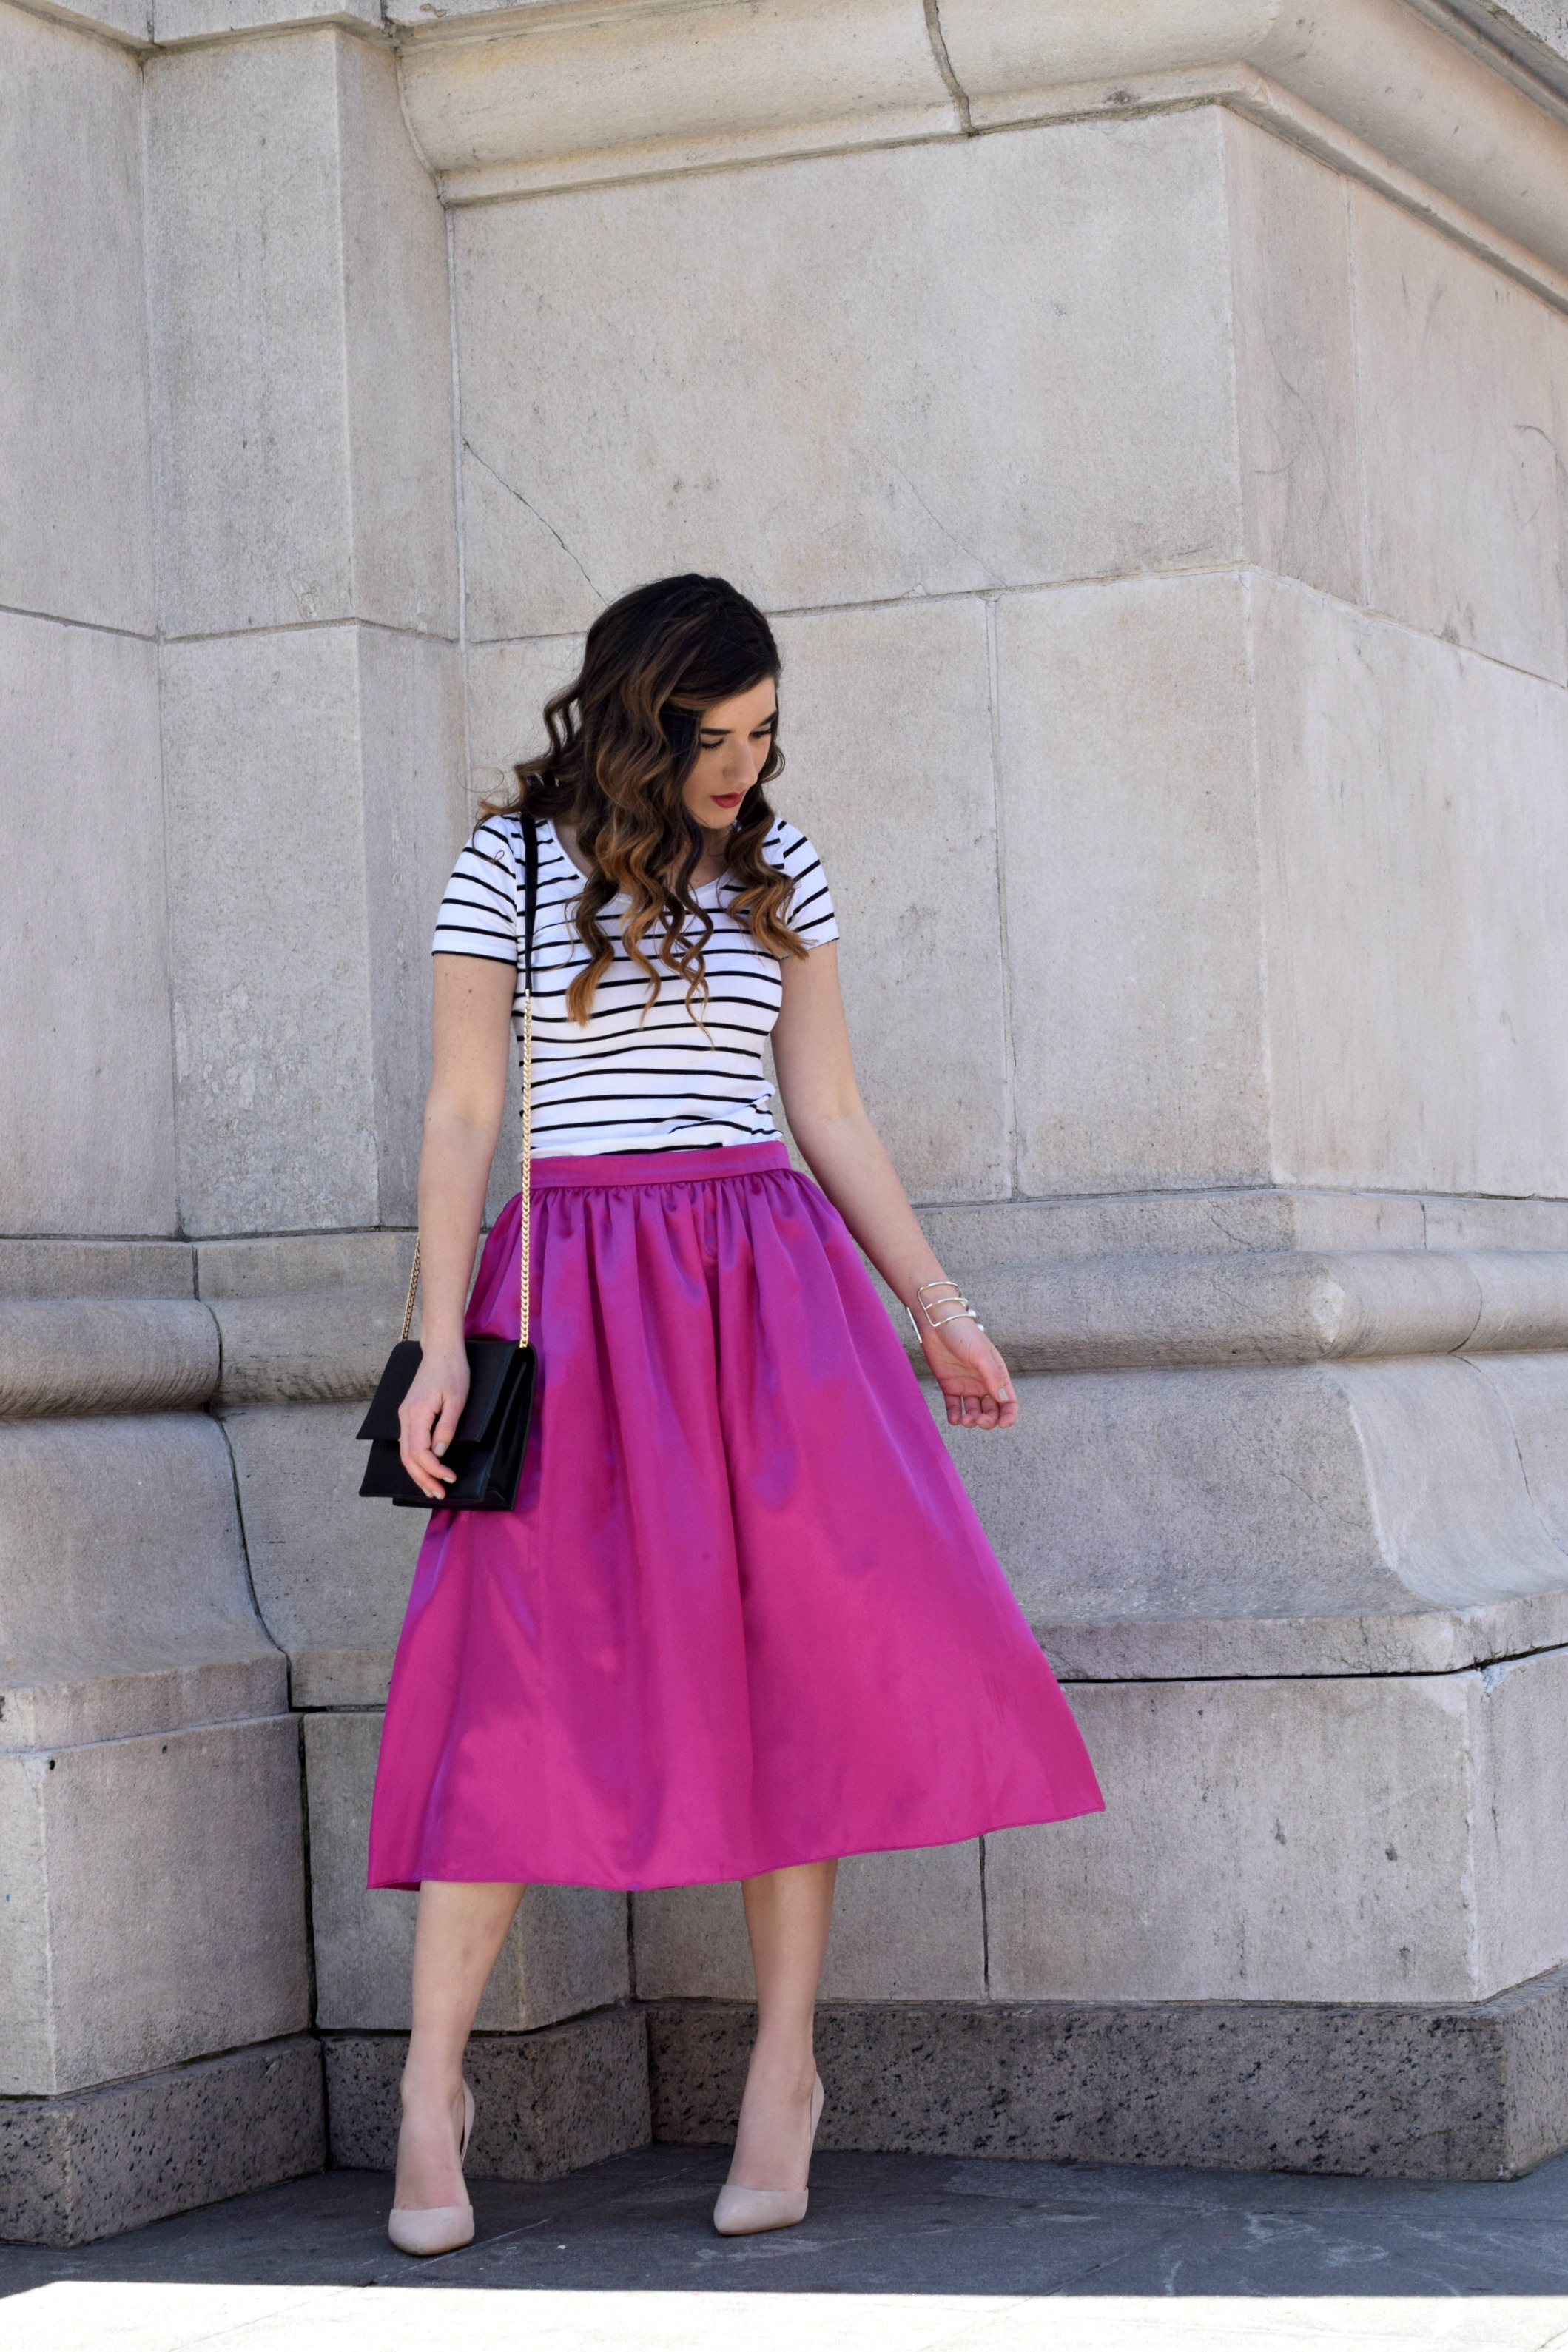 70830b80e9 Fuchsia Party Skirt More Than Just Figleaves Louboutins & Love Fashion Blog  Esther Santer NYC Street